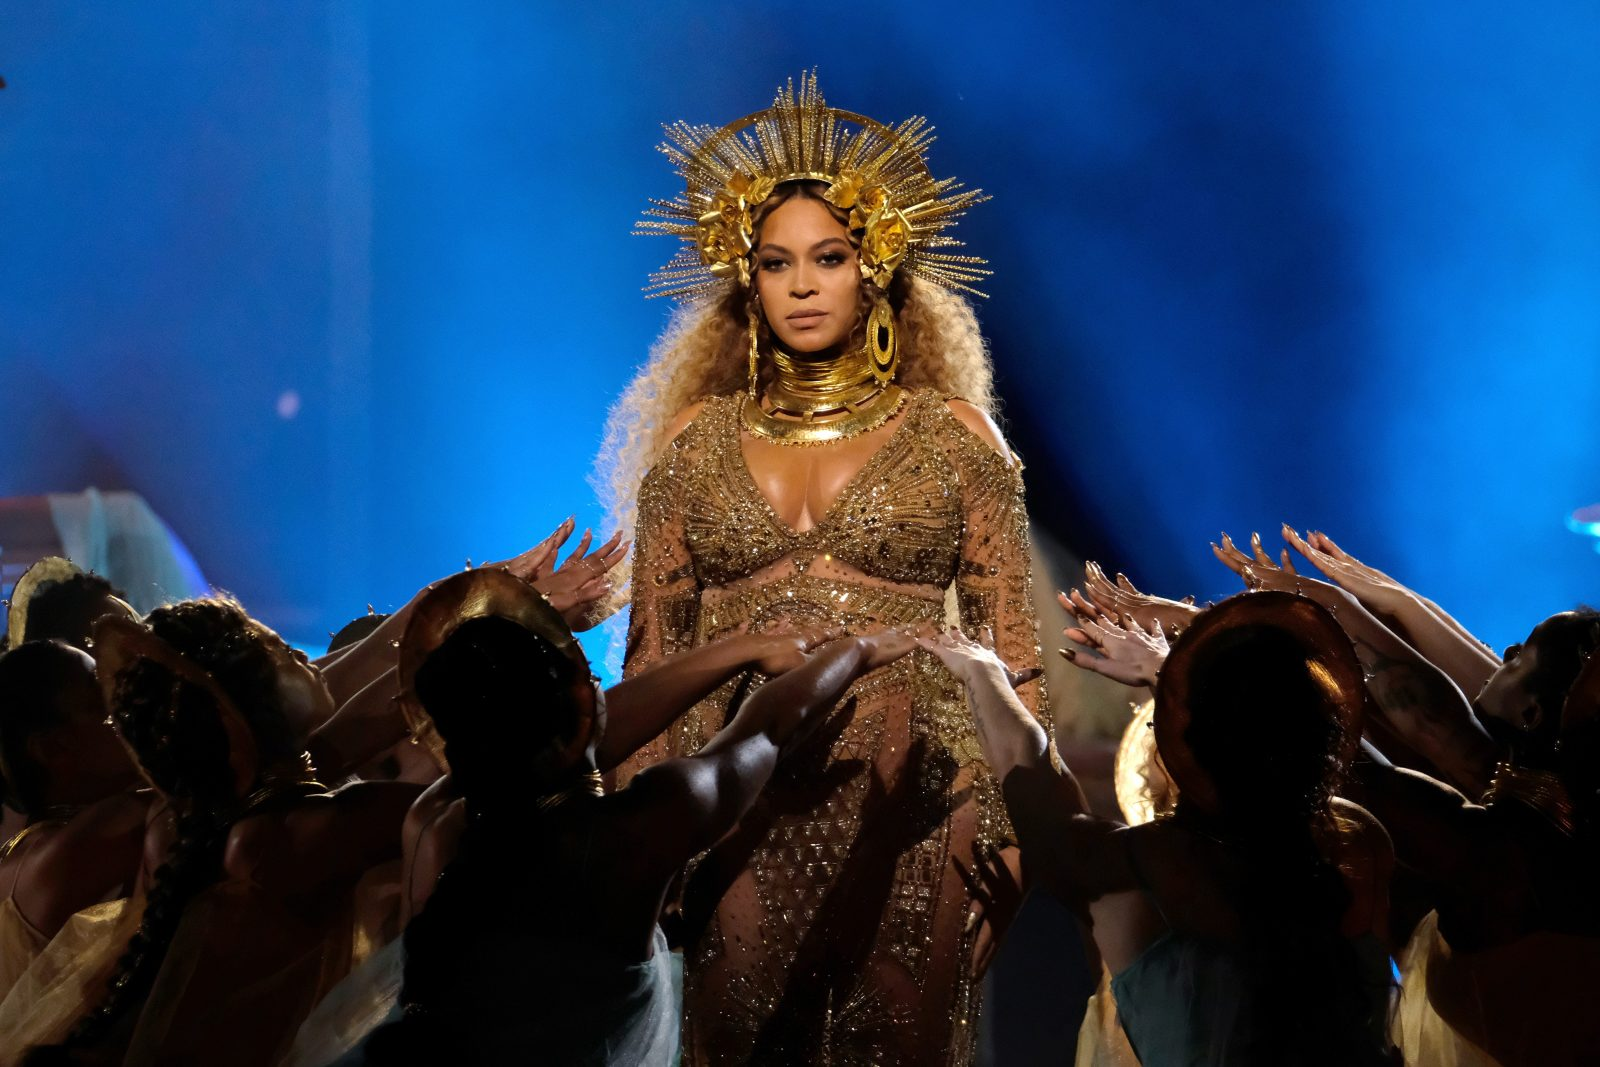 Beyonce performs during the 59th Grammy Awards at STAPLES Center on Feb. 12, 2017 in Los Angeles. (Getty Images)